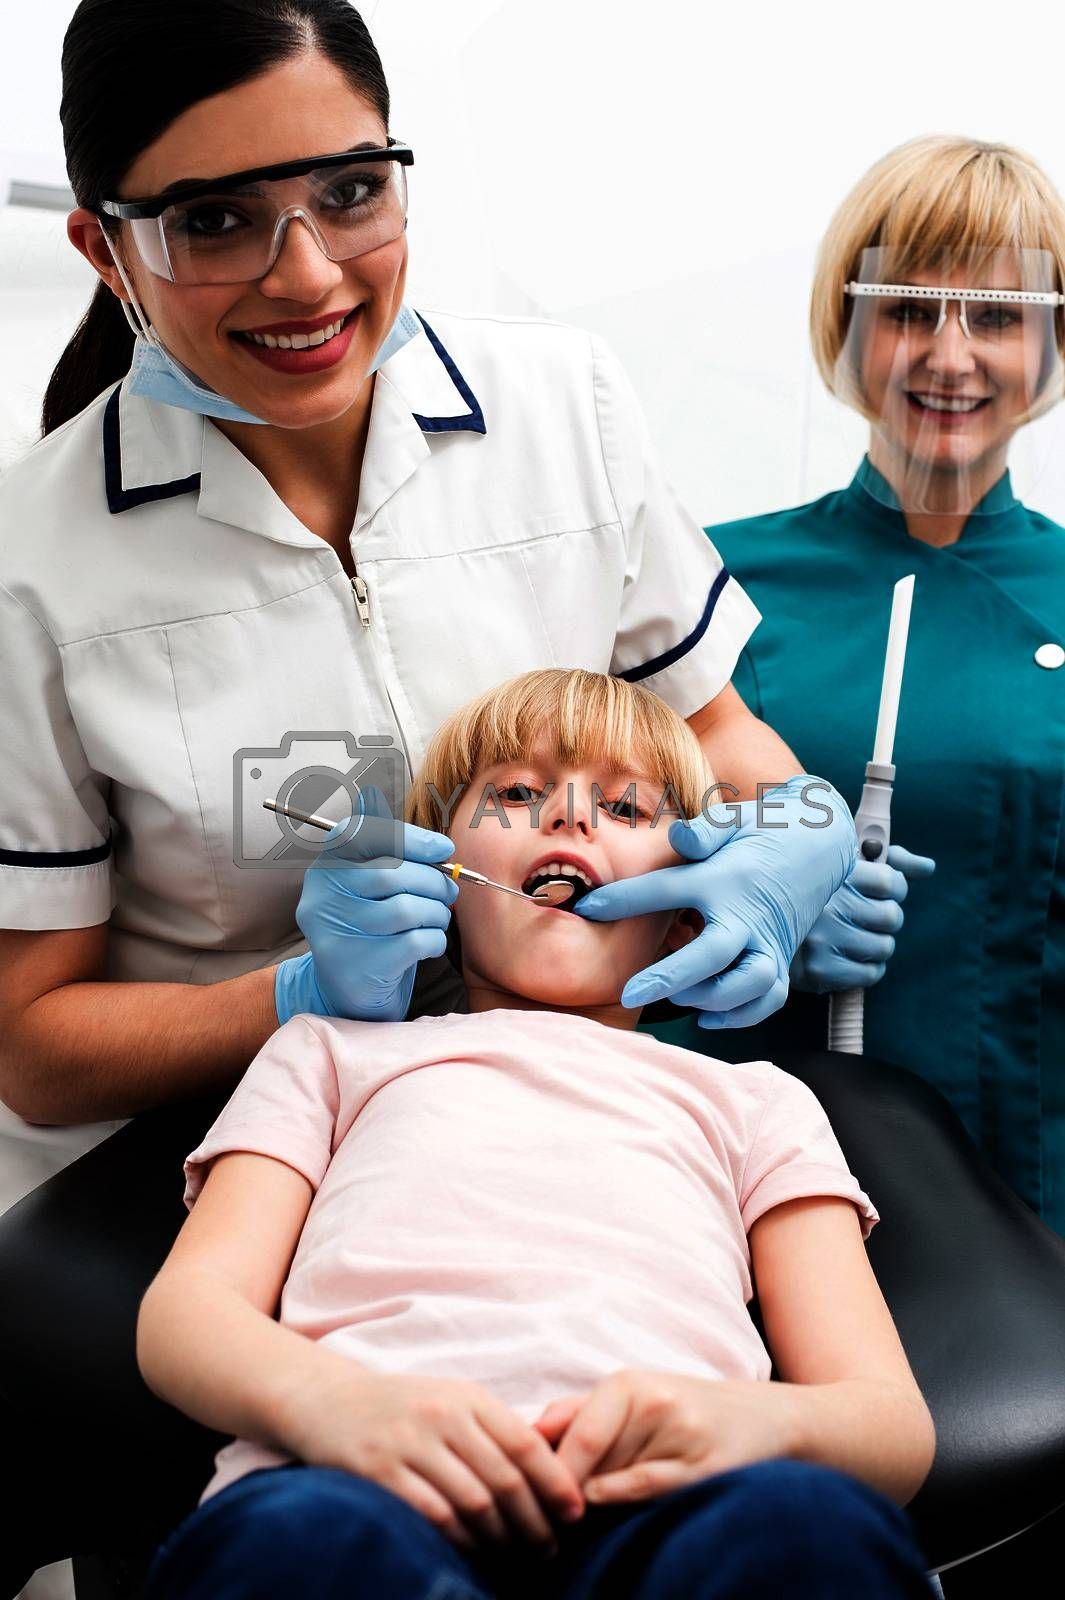 Dentist and assistant examining a little girl patient